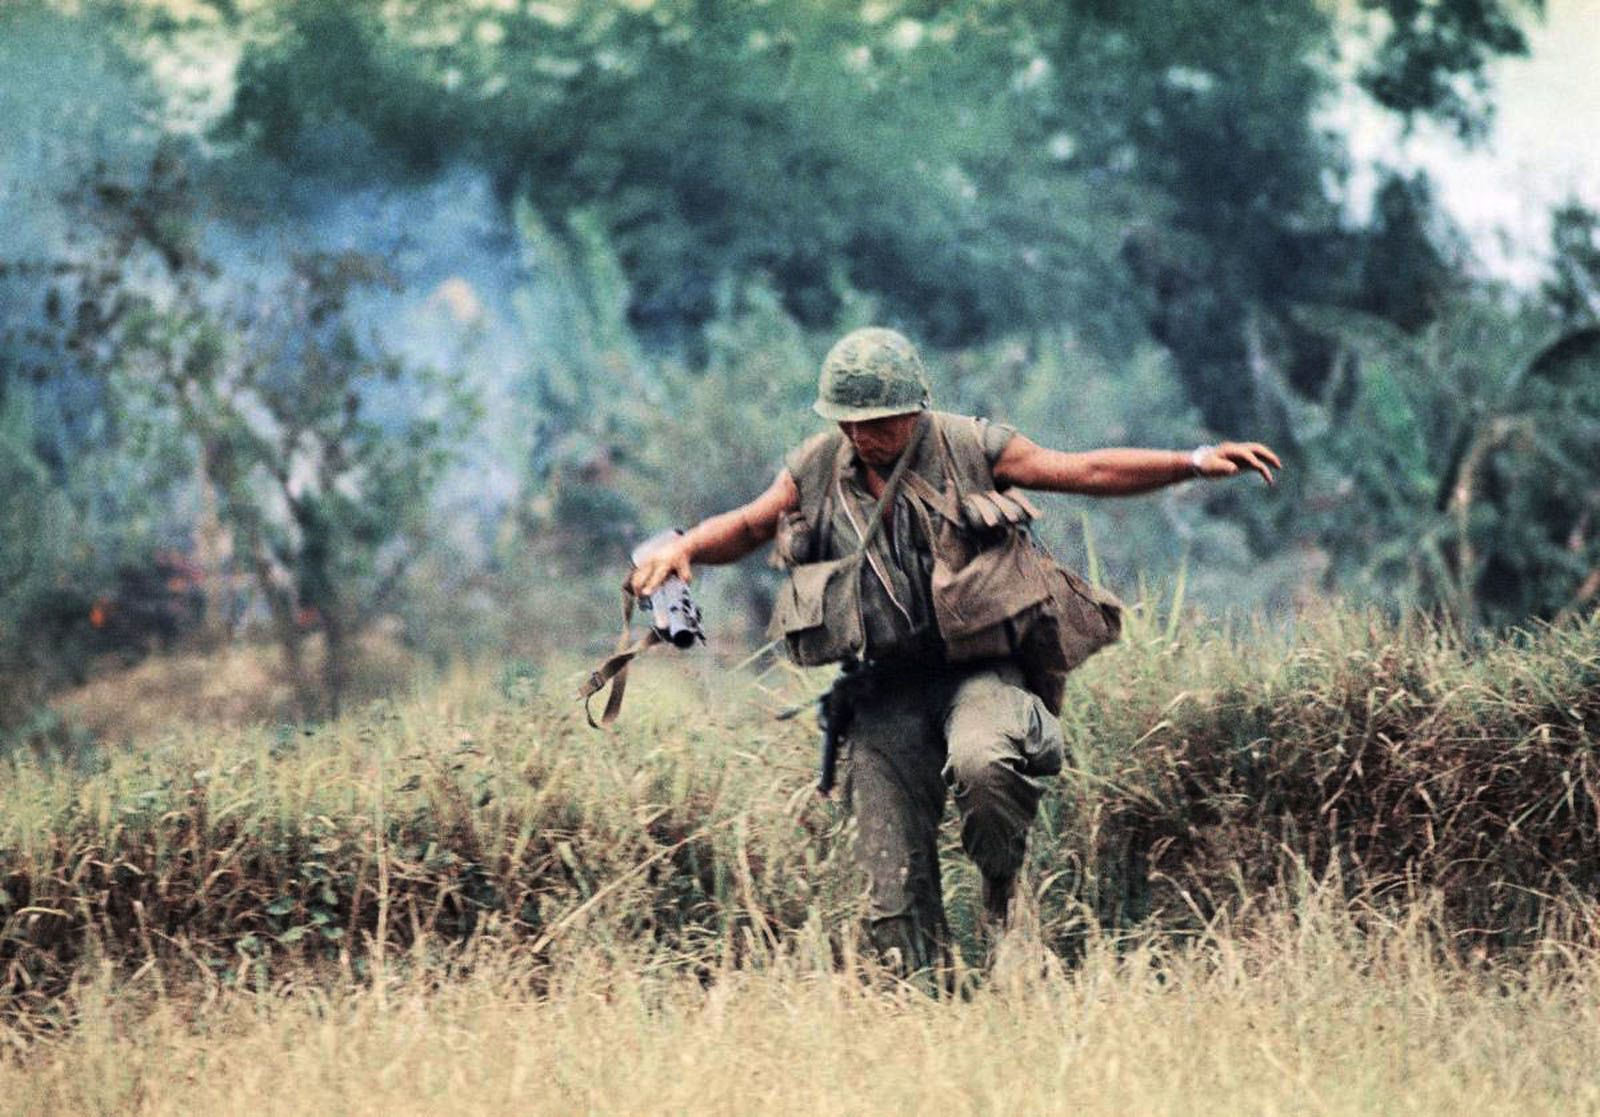 1965 Soldier crossing a field during the Vietnam War